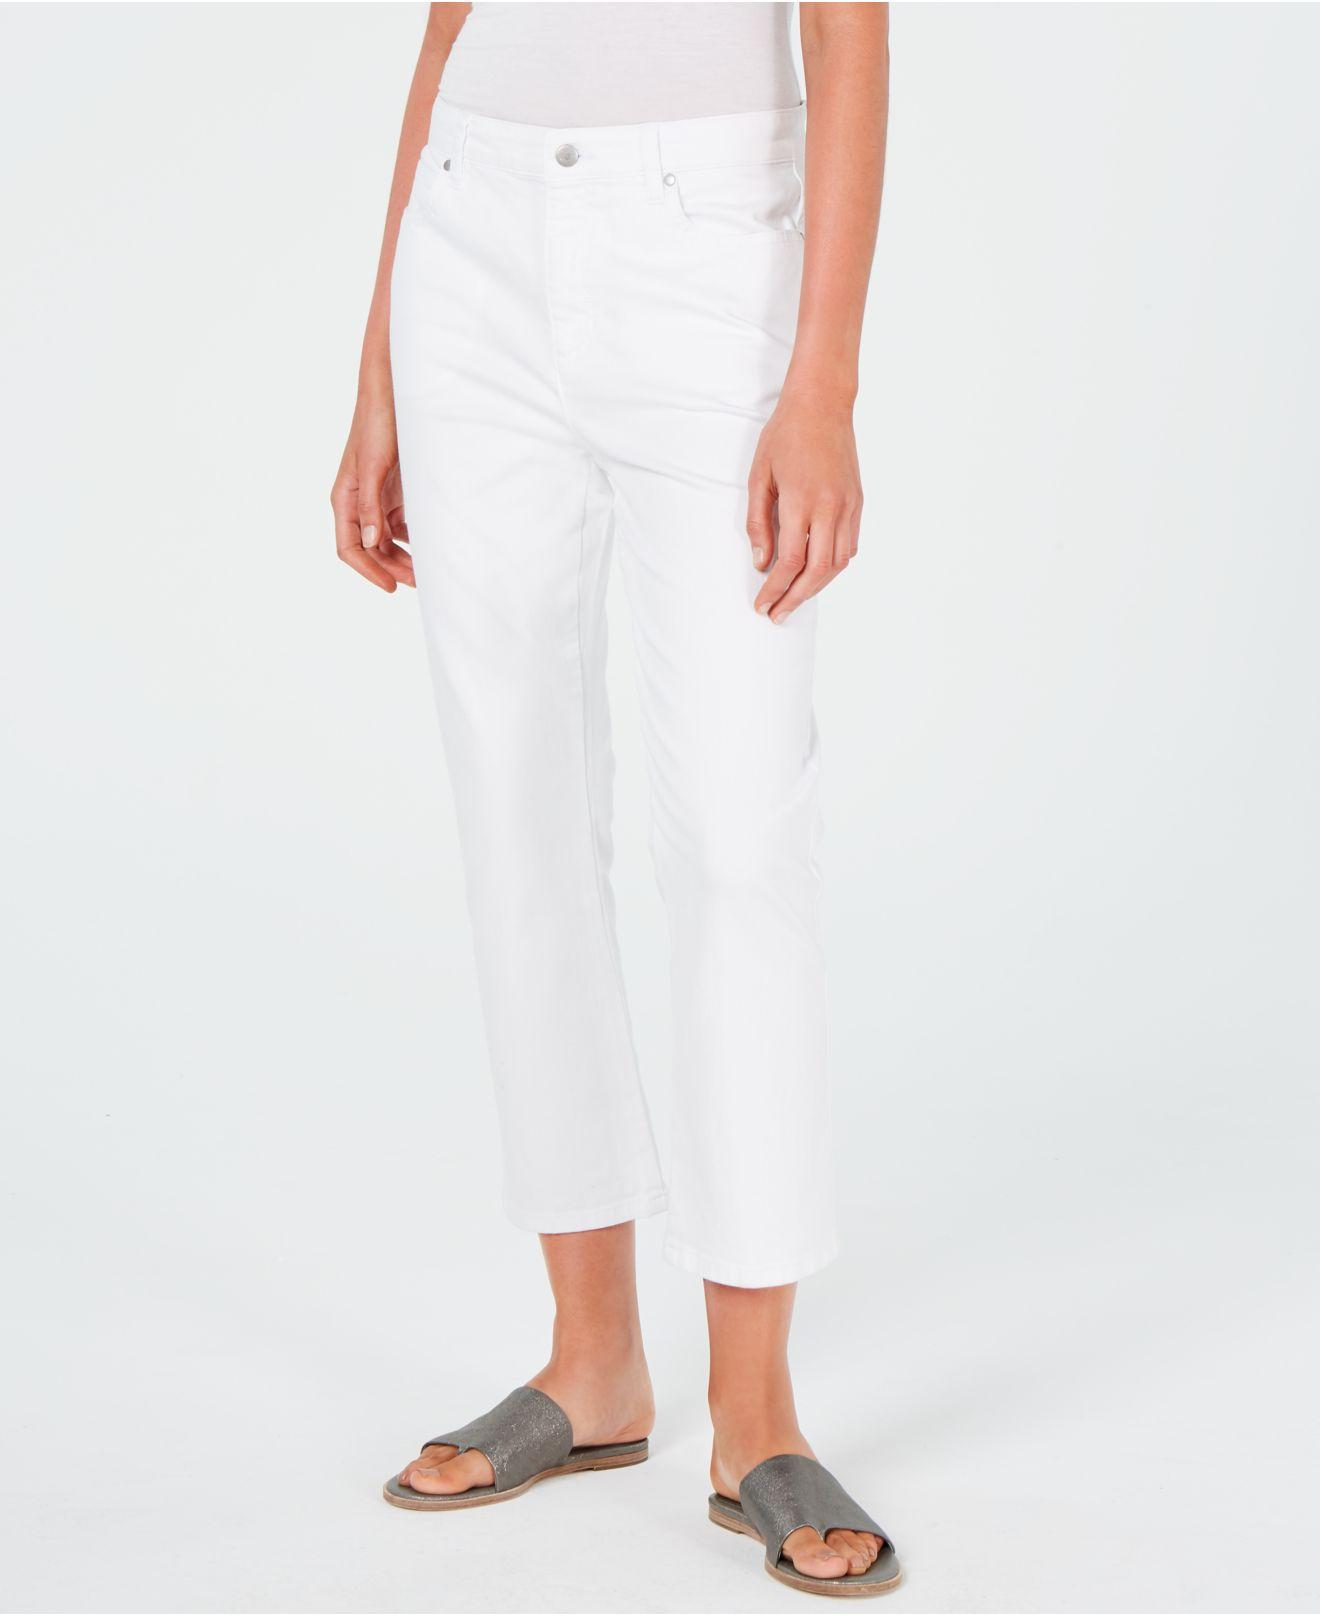 292b6ef7a2 Eileen Fisher. Women s White Cropped Organic Cotton Jeans